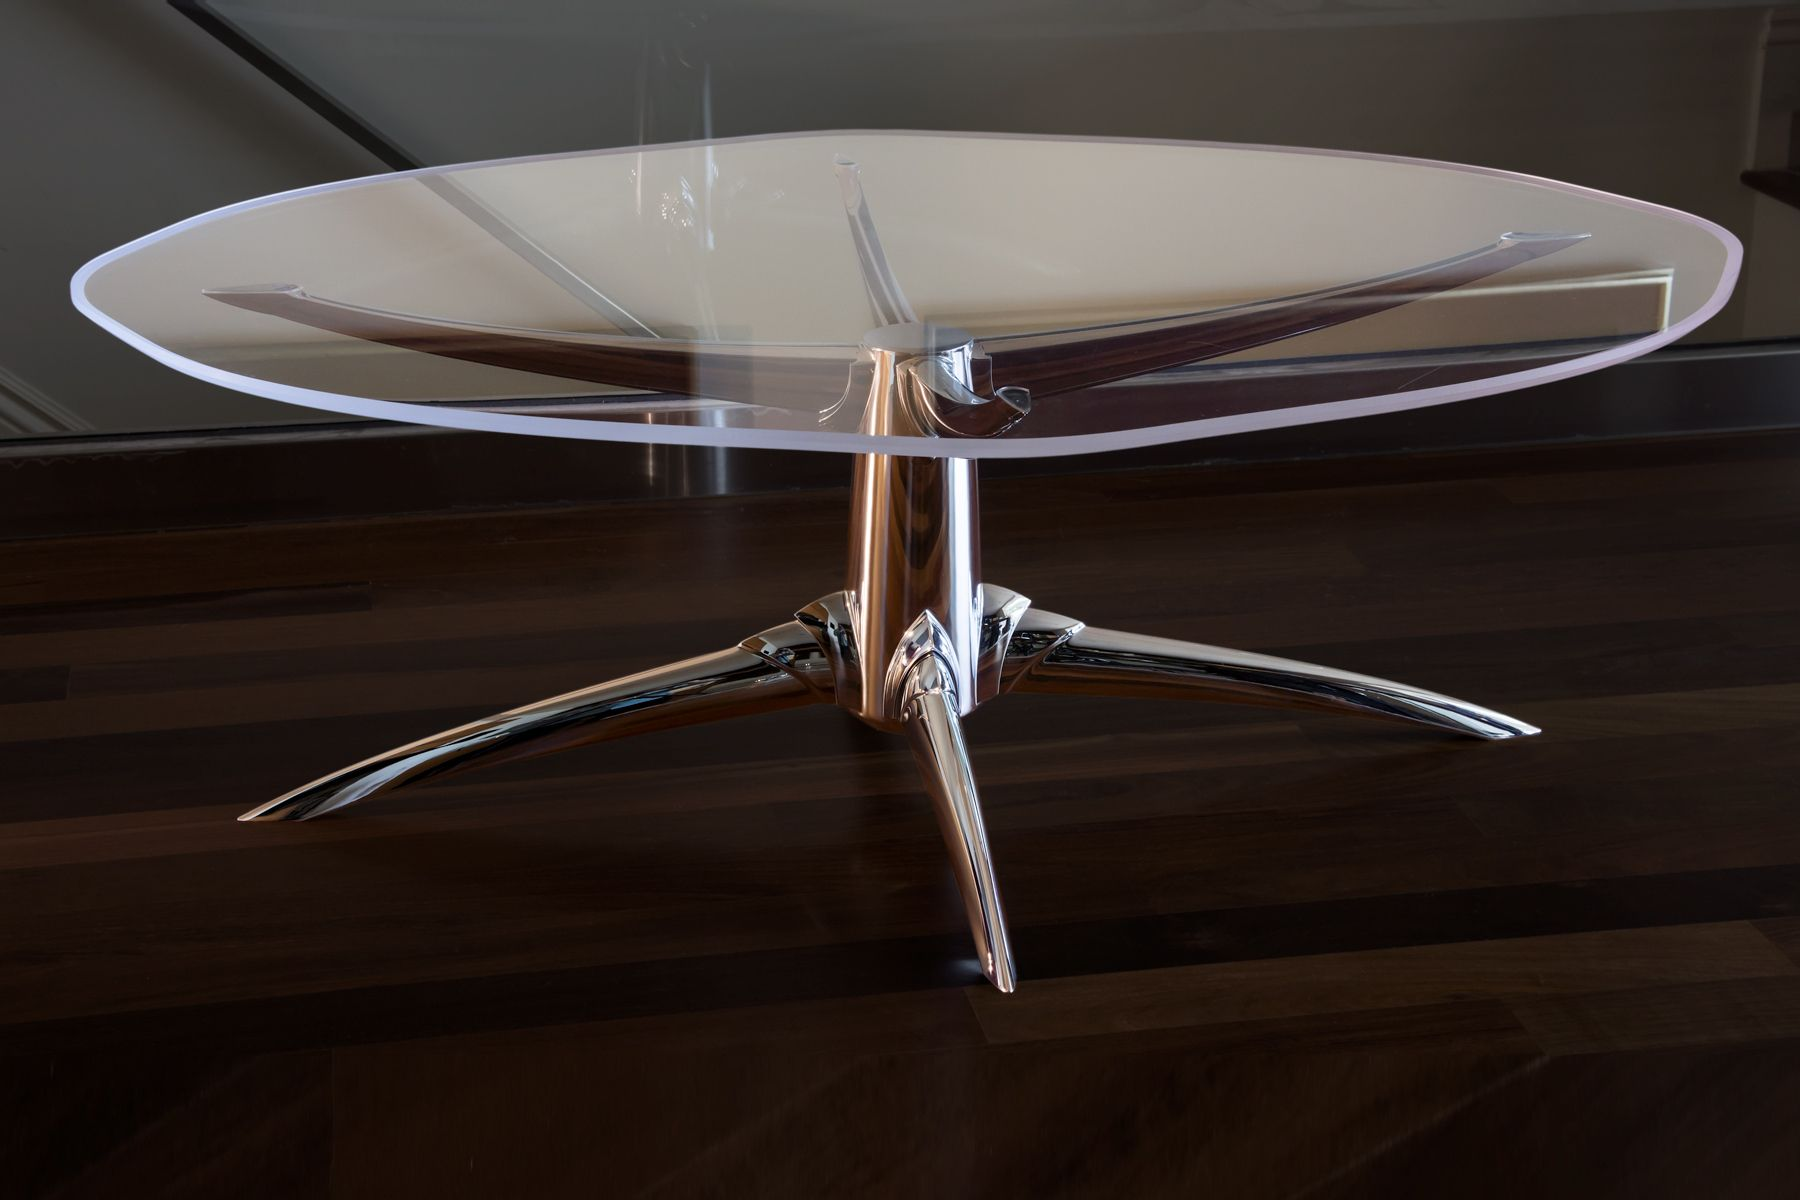 1aaron_levine_contemporary_modern_studio_furniture_maker_metal_aluminum_acrylic_plastic_woodworker_art_artist_northwest_stretch_chrome_decorative_coffee_table_detail2.jpg